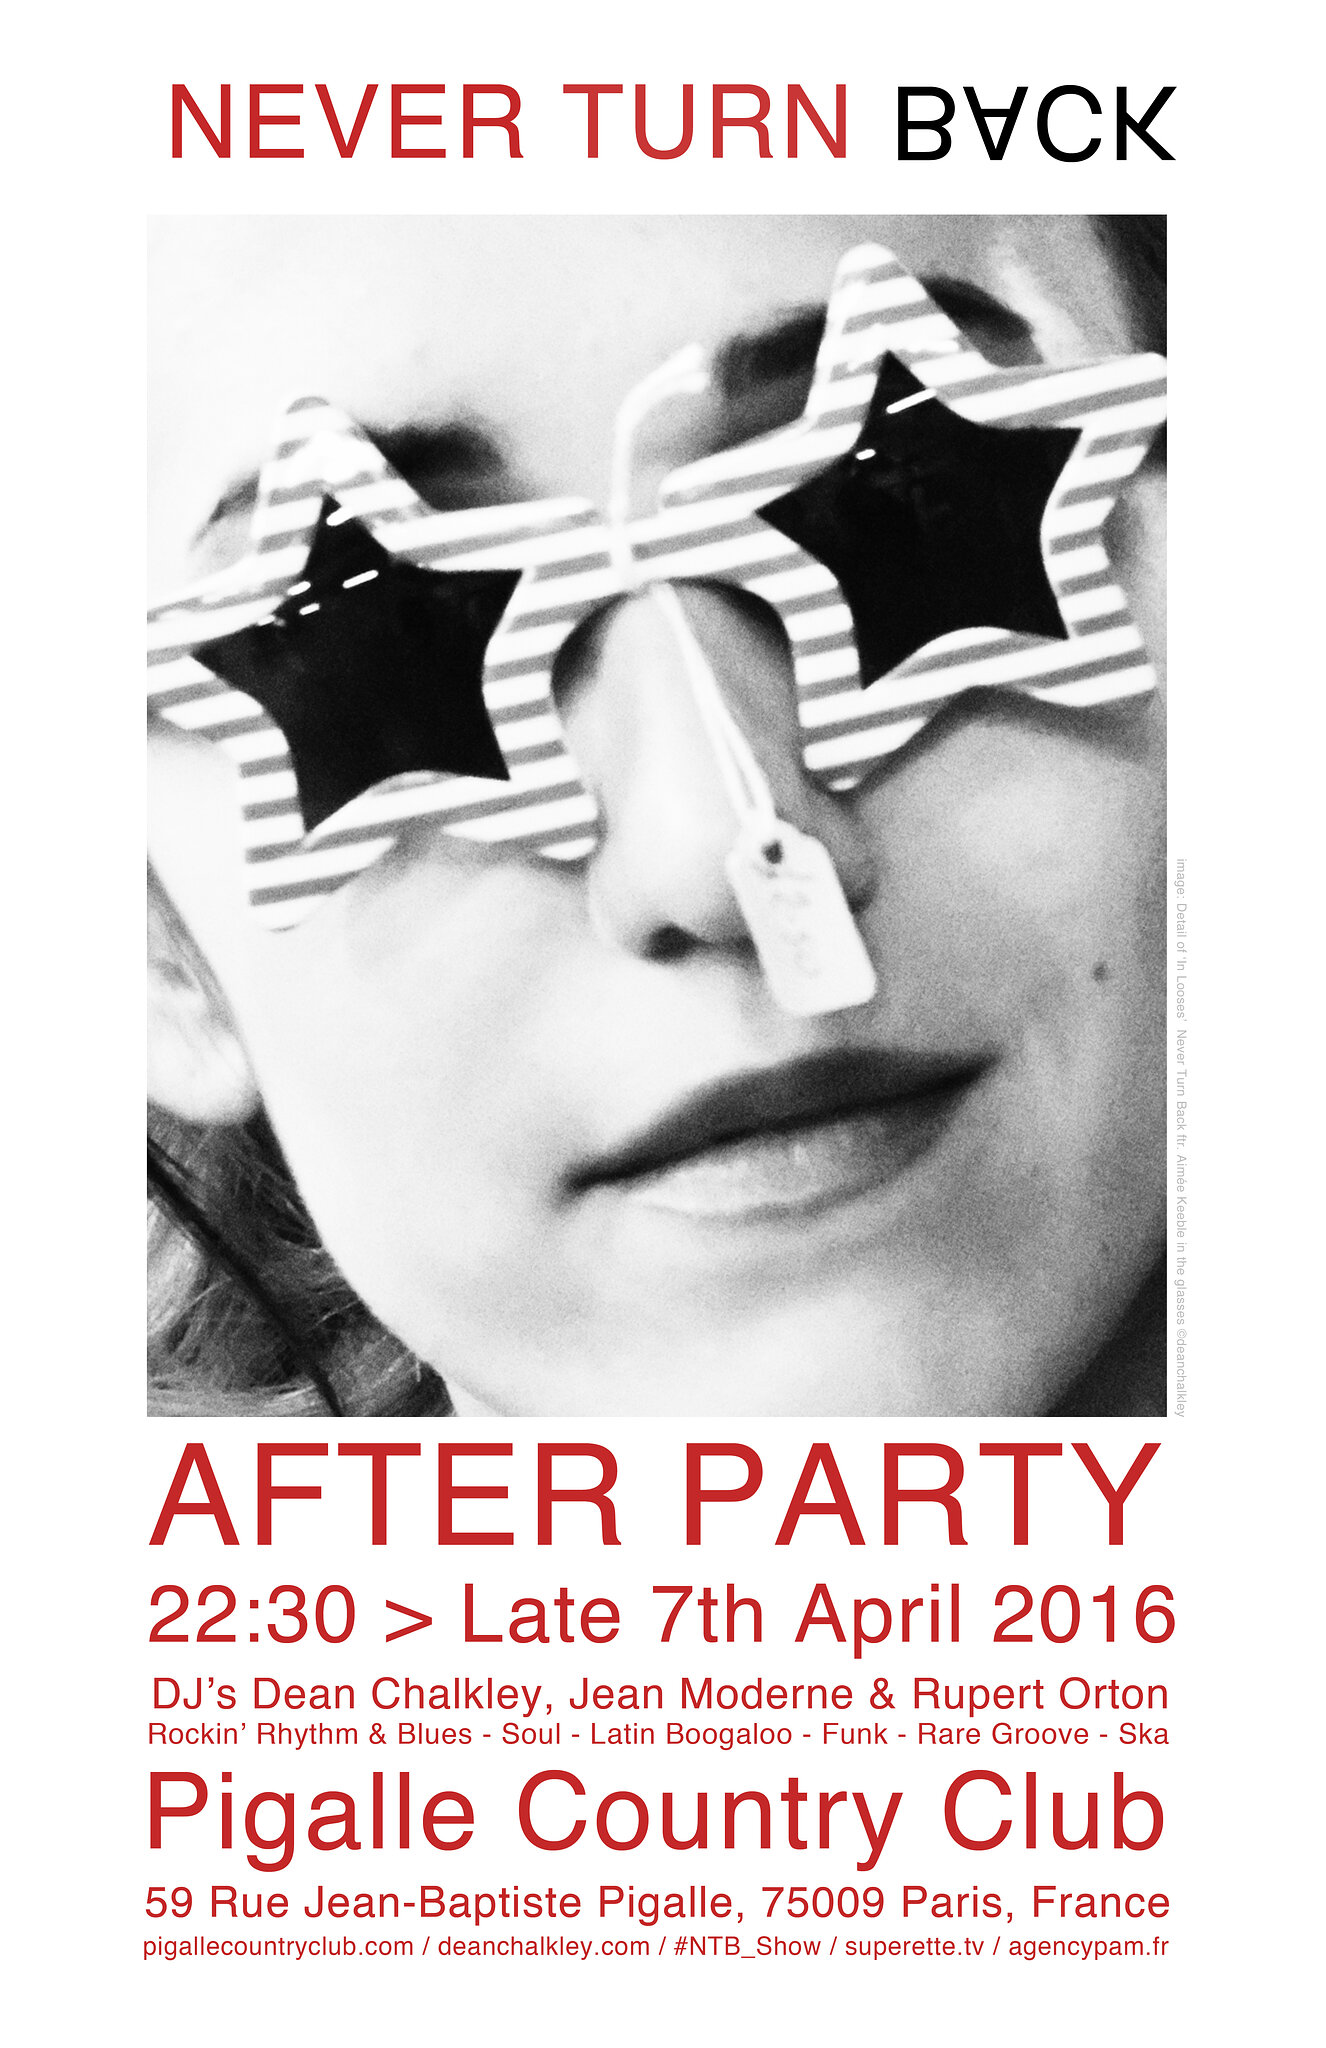 Never Turn Back: Paris Aftershow Party Announced